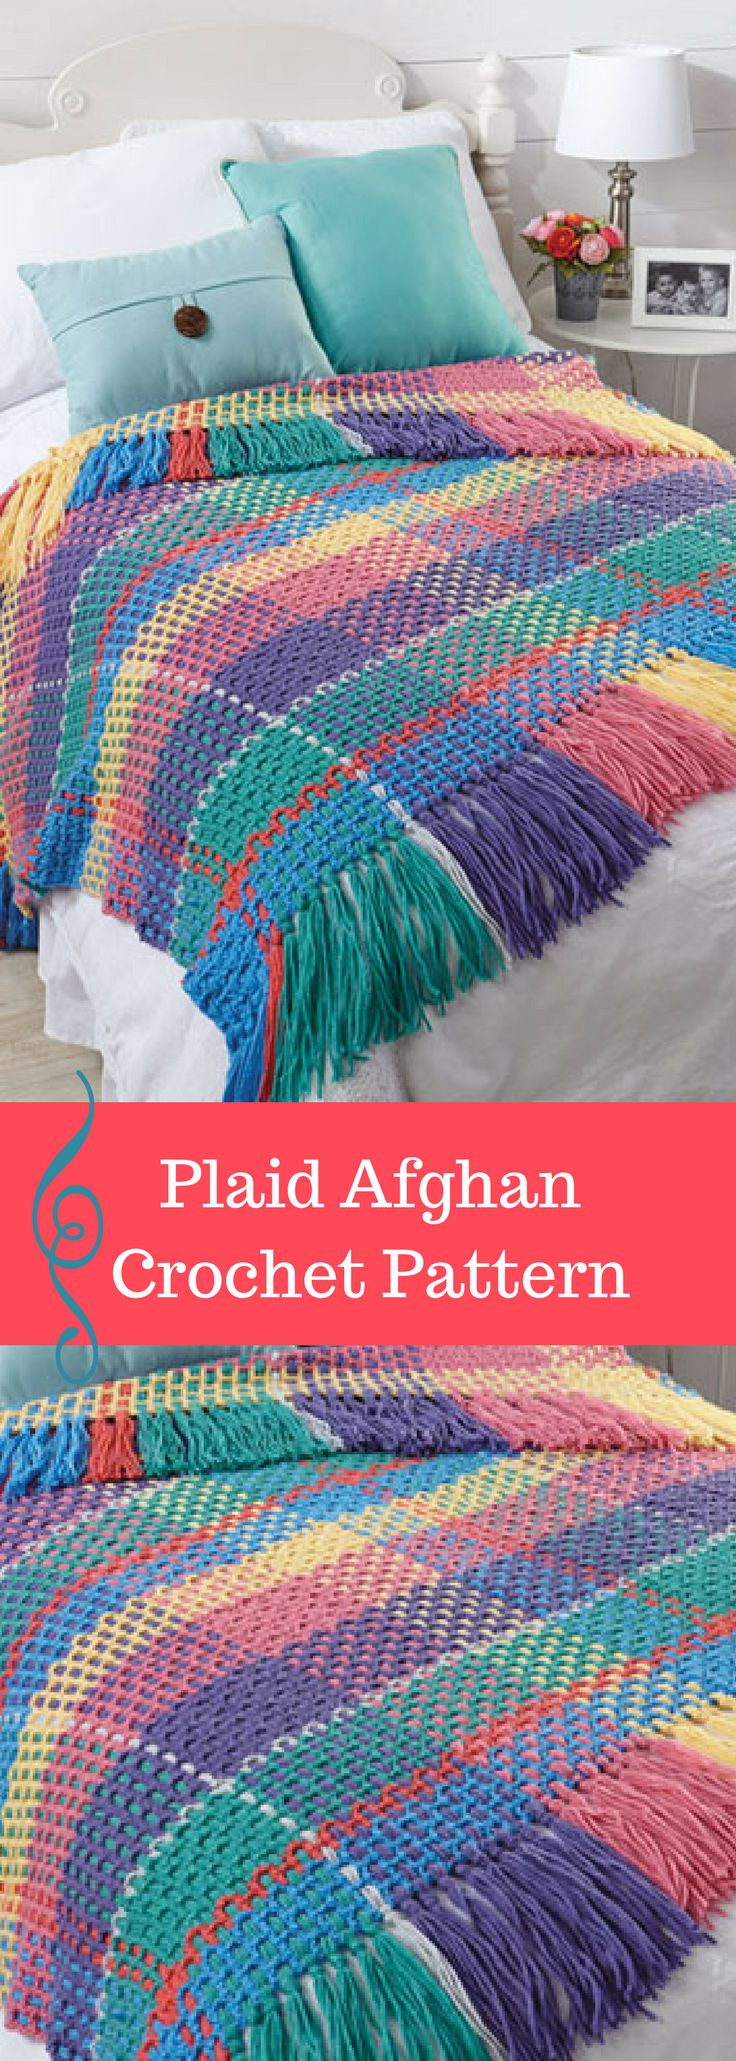 Plaid Afghan Crochet Pattern. Tutorial Instructions to make the plaid your own colors if desired. Pattern is available for download after purchase. #ad